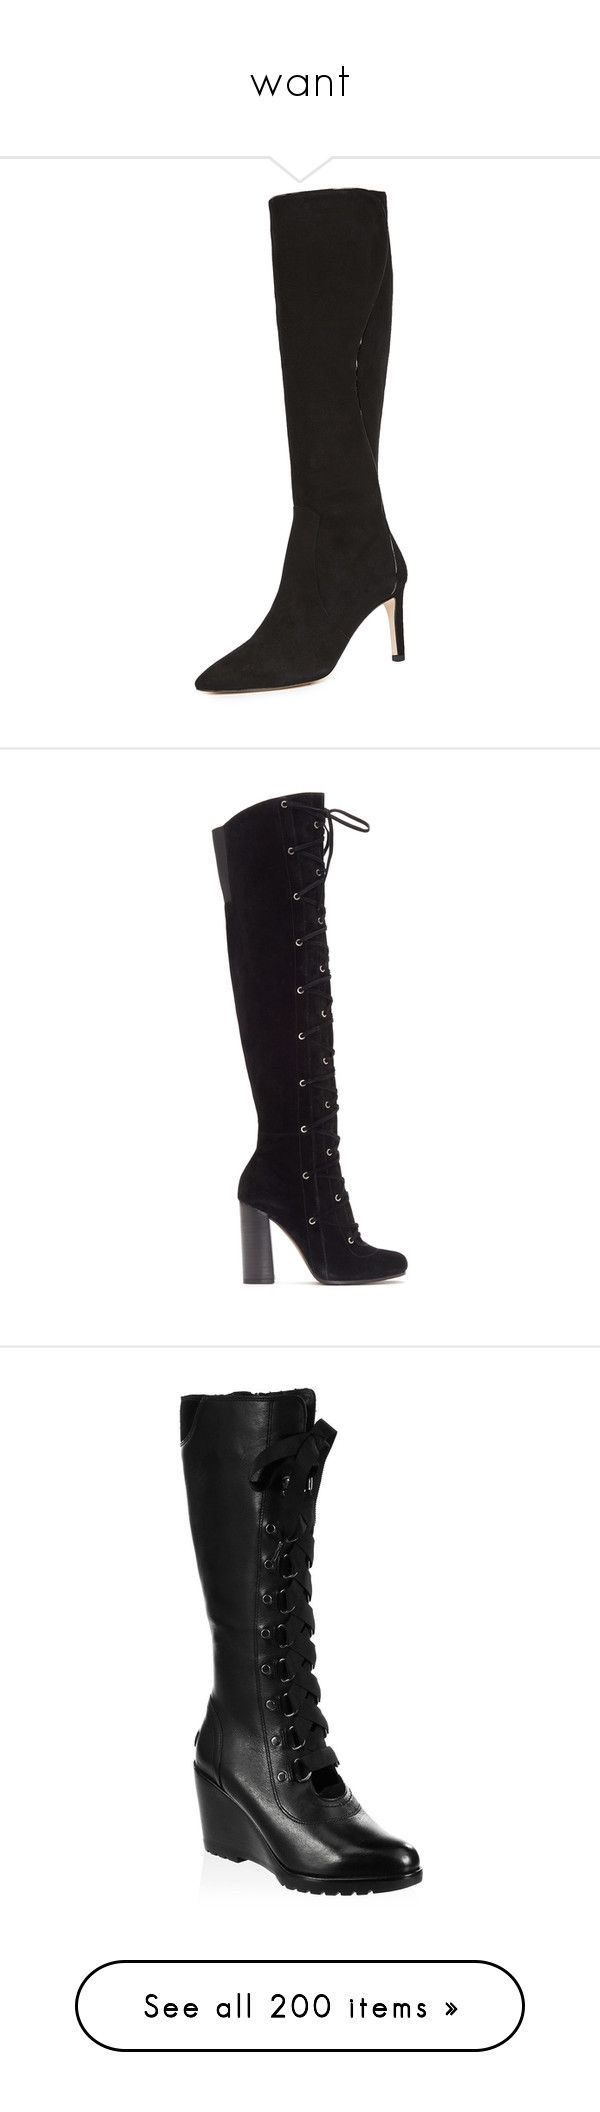 """""""want"""" by toddii ❤ liked on Polyvore featuring shoes, boots, black, black high boots, leather knee high boots, black leather boots, pointed toe boots, pointed toe leather boots, suede lace-up boots and black suede shoes"""